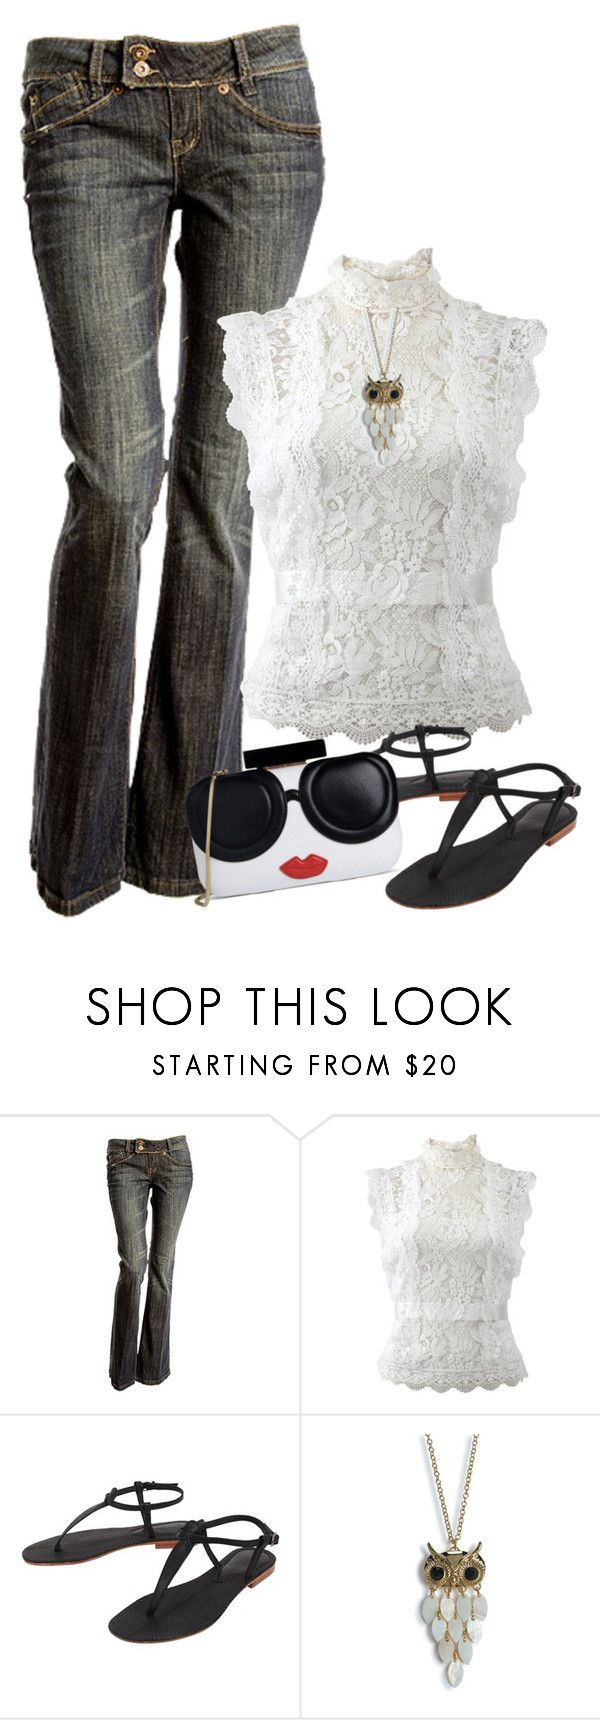 """jeans and sandals 2"" by shanasark ❤ liked on Polyvore featuring Oscar de la Renta, Cocobelle, Aéropostale and Alice + Olivia"